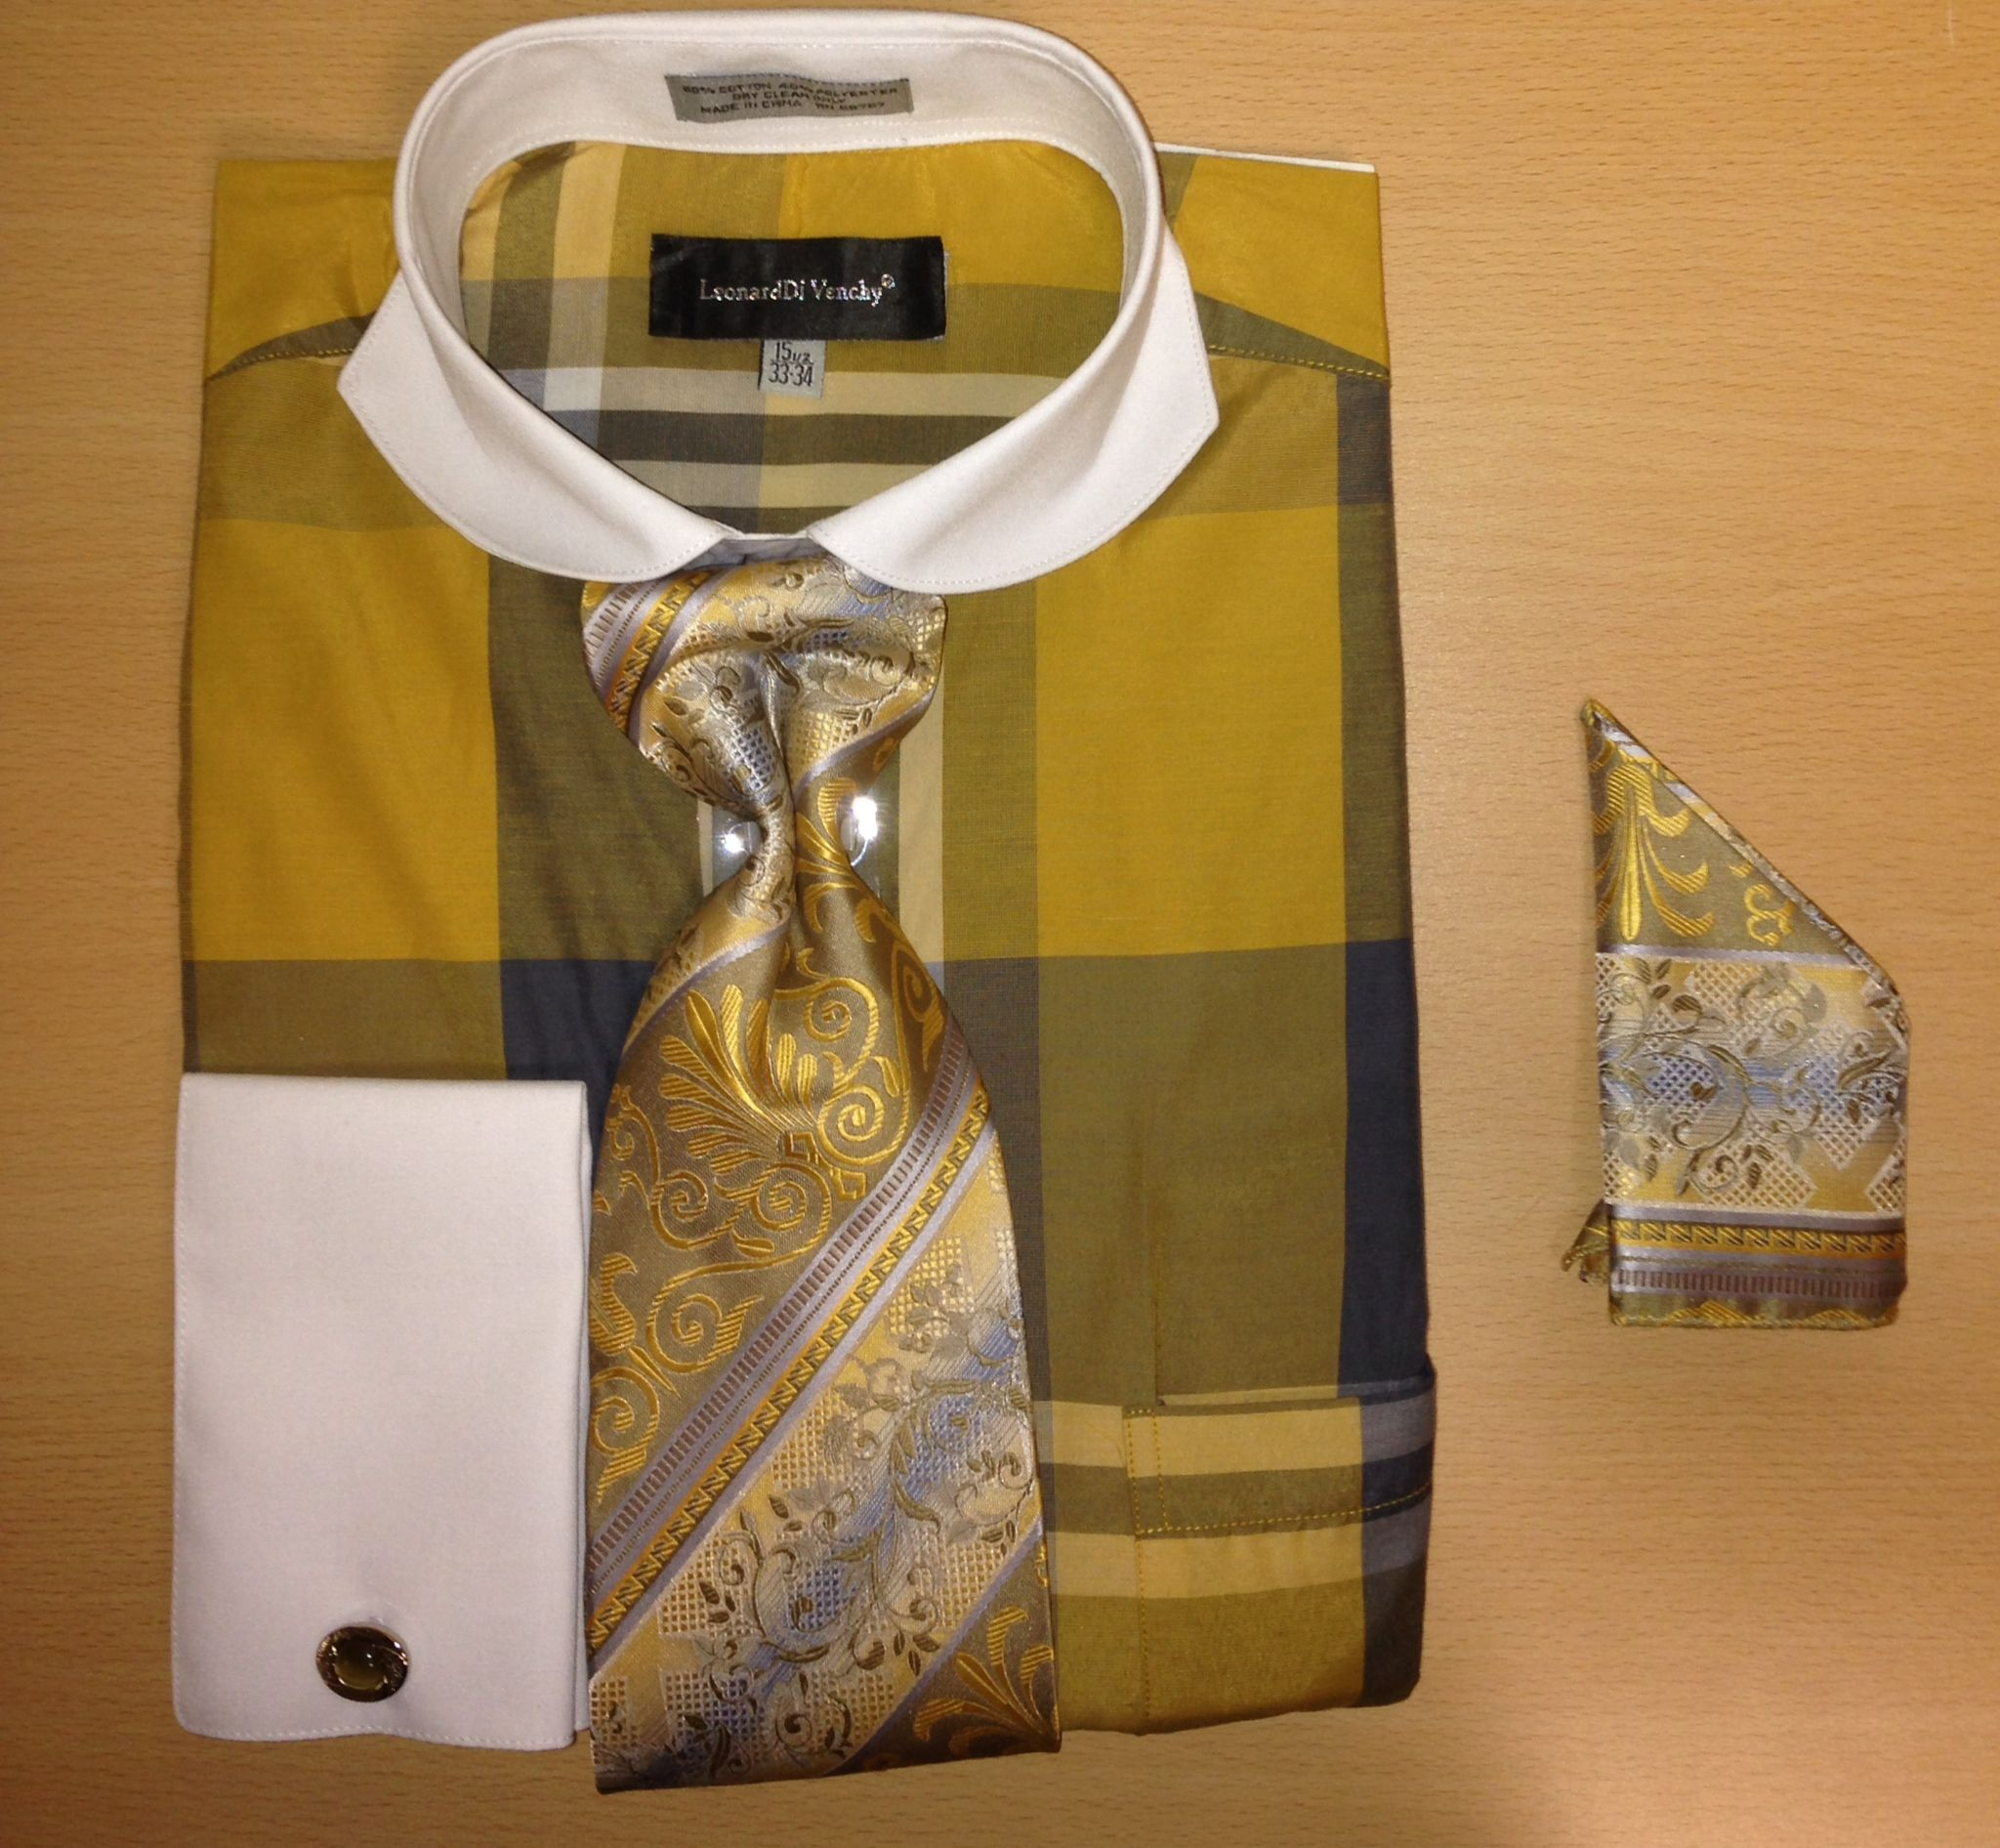 Men's Fashion Enormous Checked Cufflink Dress Shirt Set - Gold & Navy